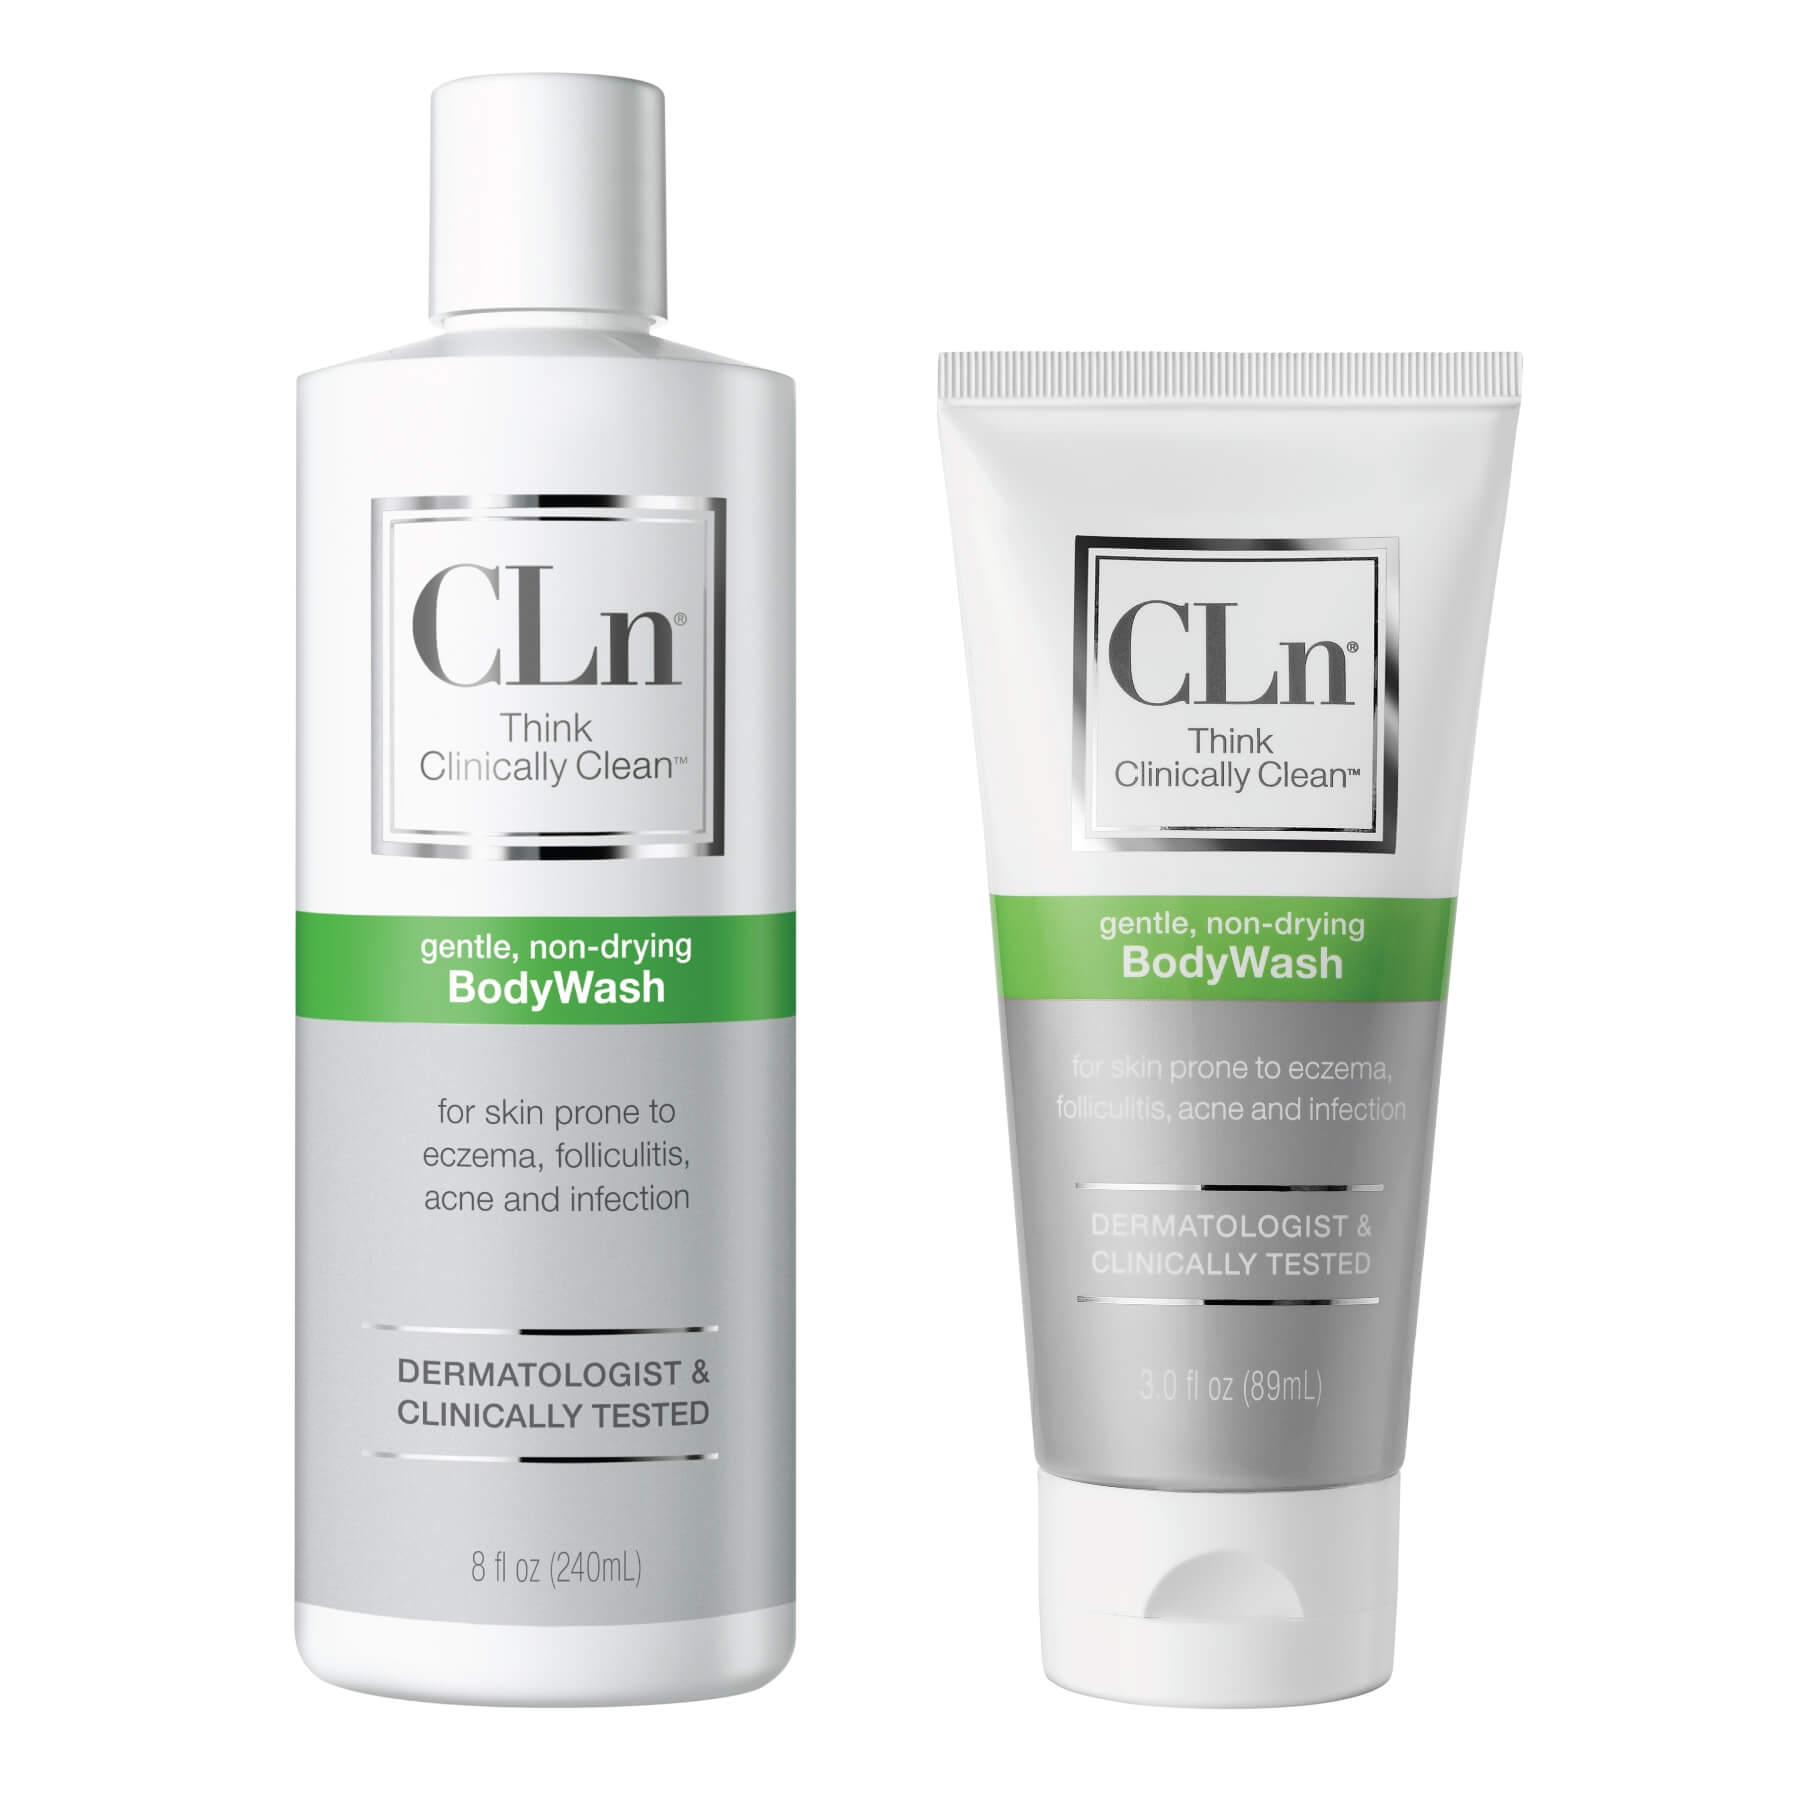 This CLn Body Wash comes in different sizes and packaging to meet your needs.